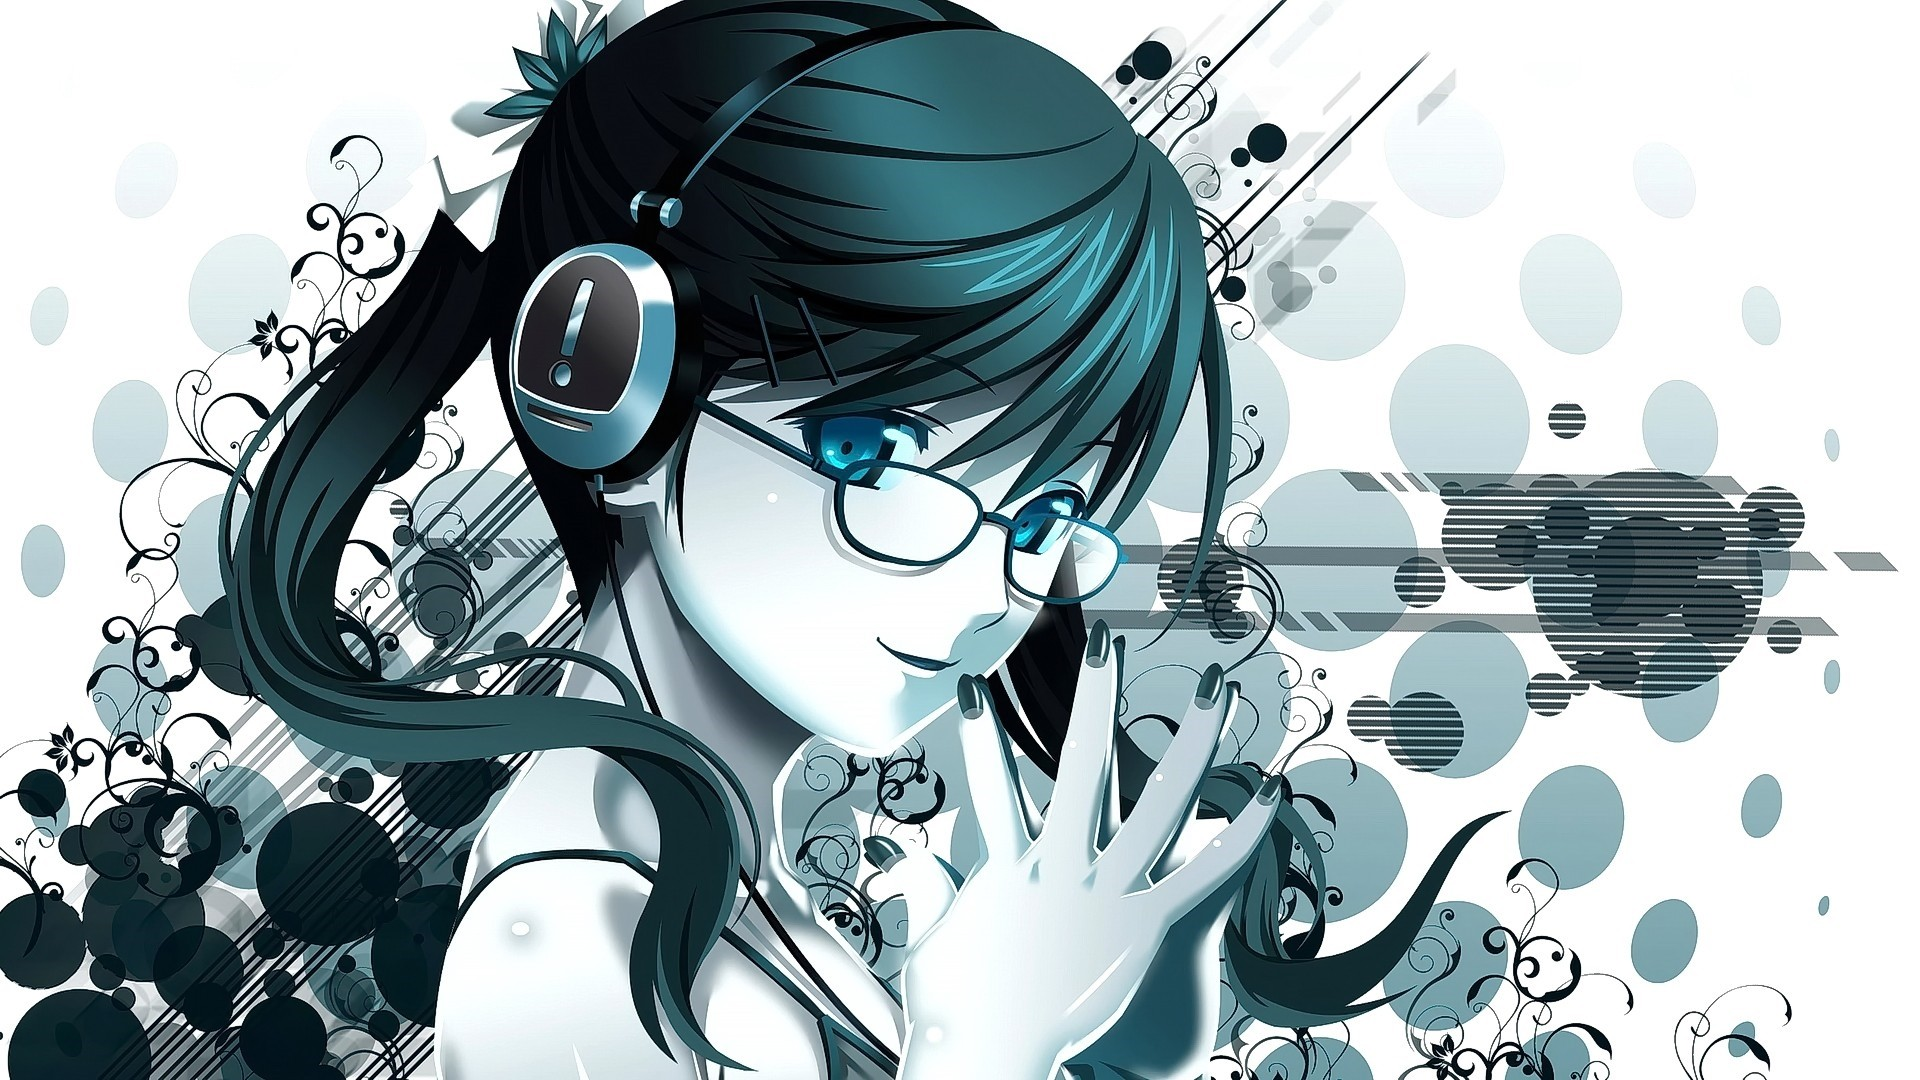 Anime Girl With Glasses PC Wallpaper HD